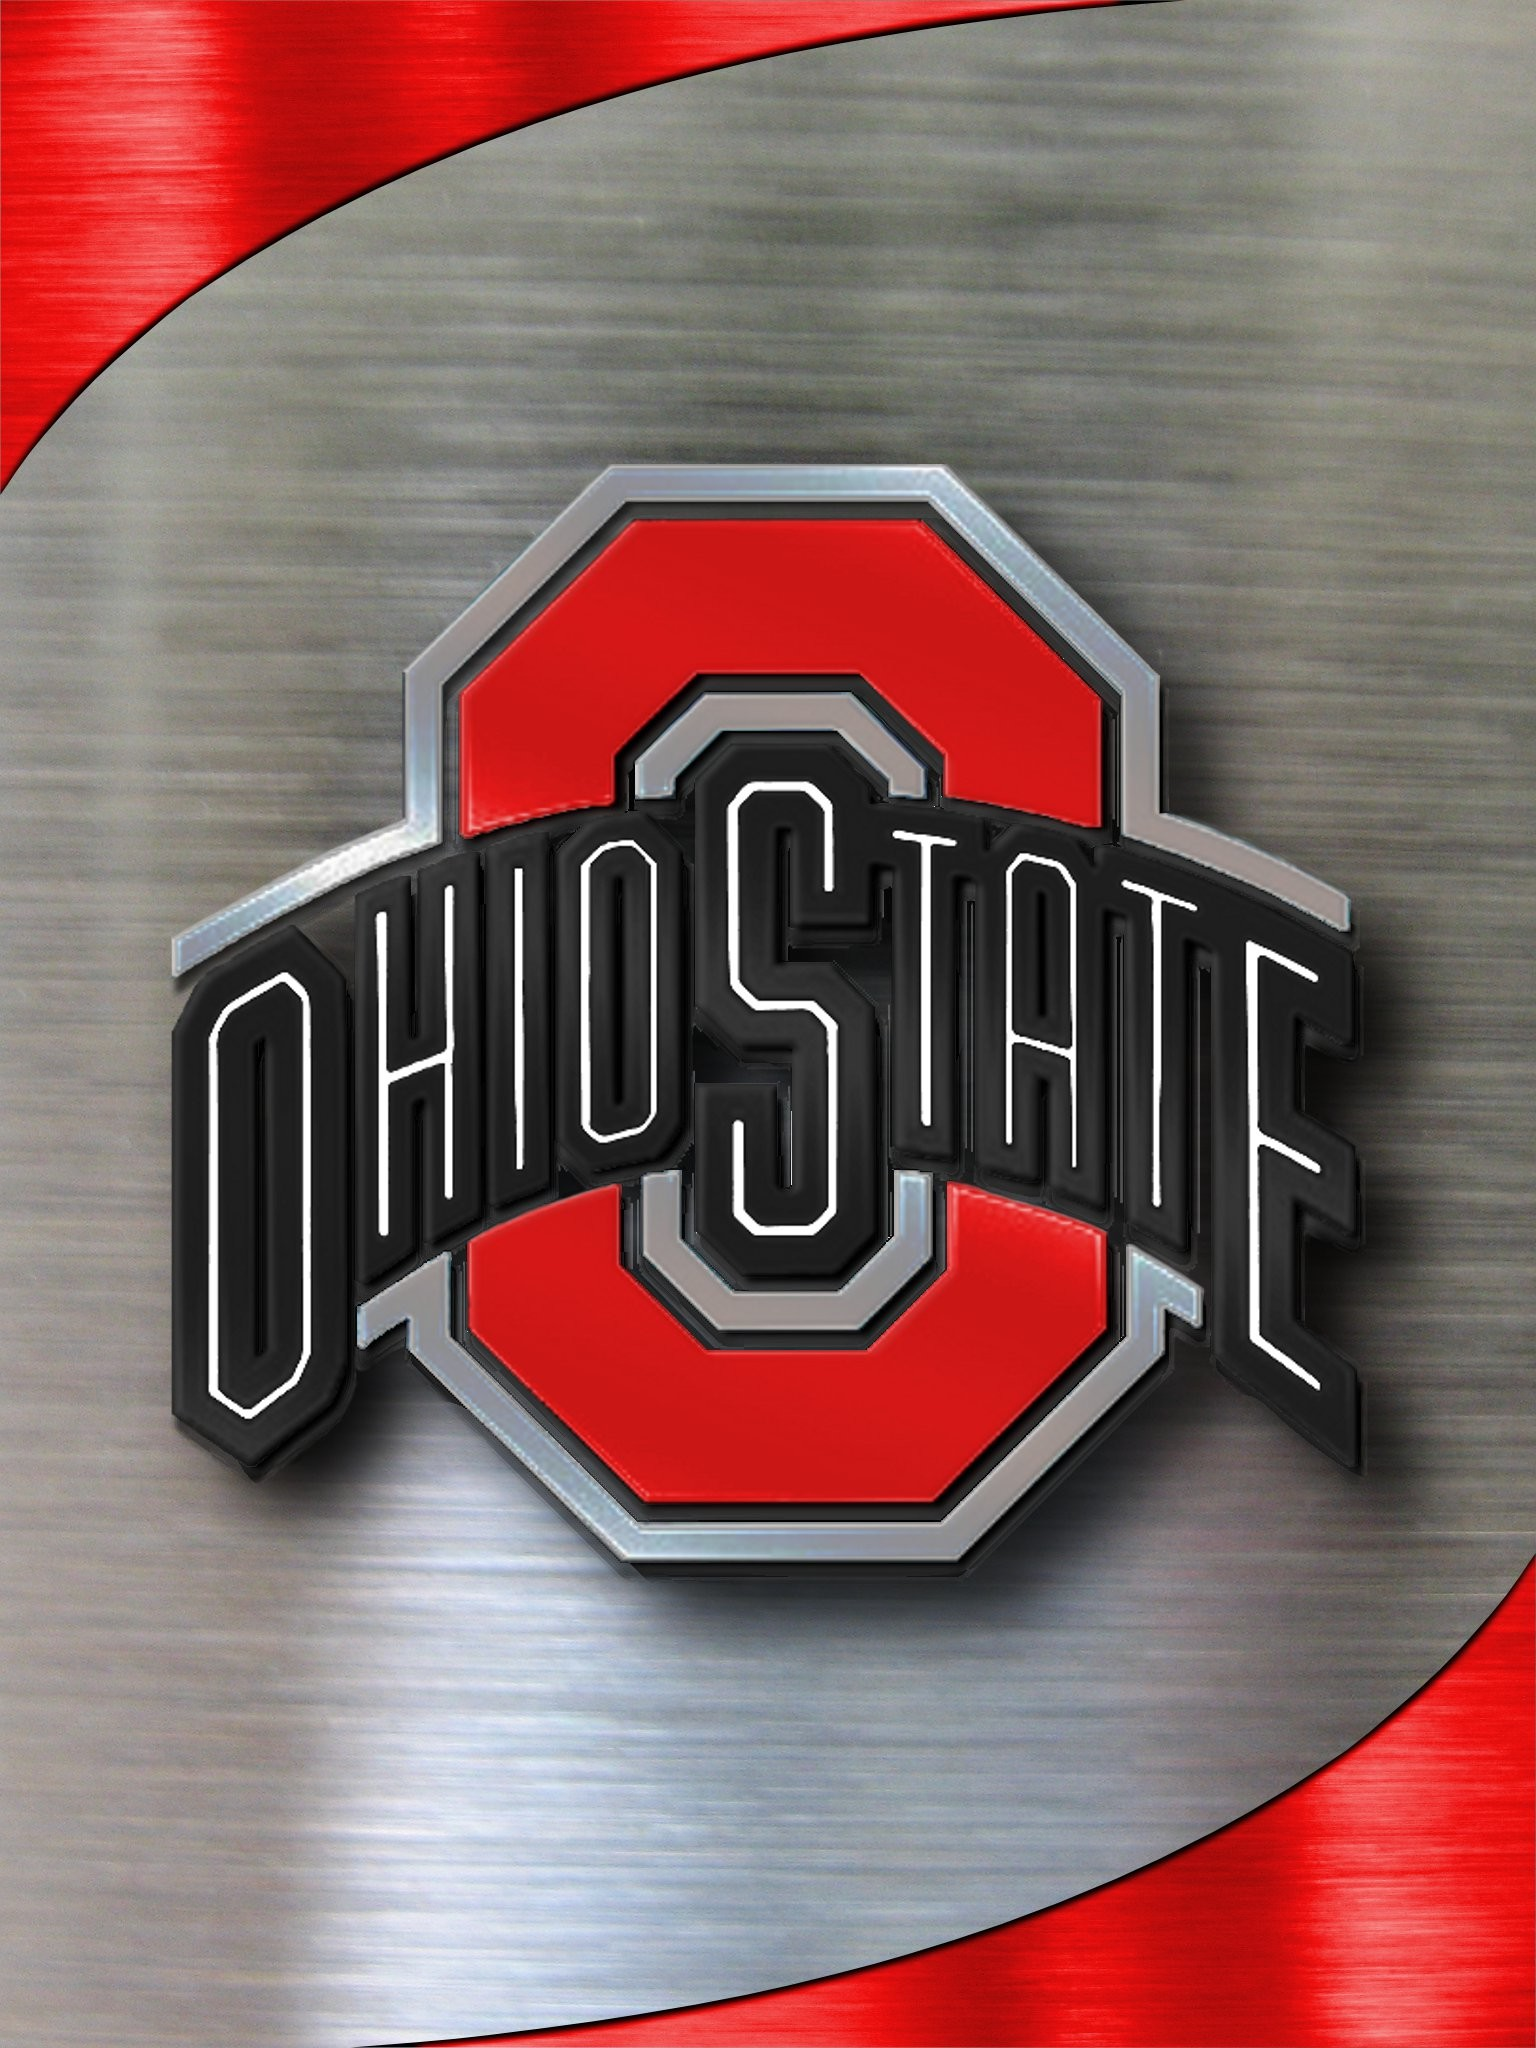 Image detail for -Ohio State Football OSU Wallpaper 423